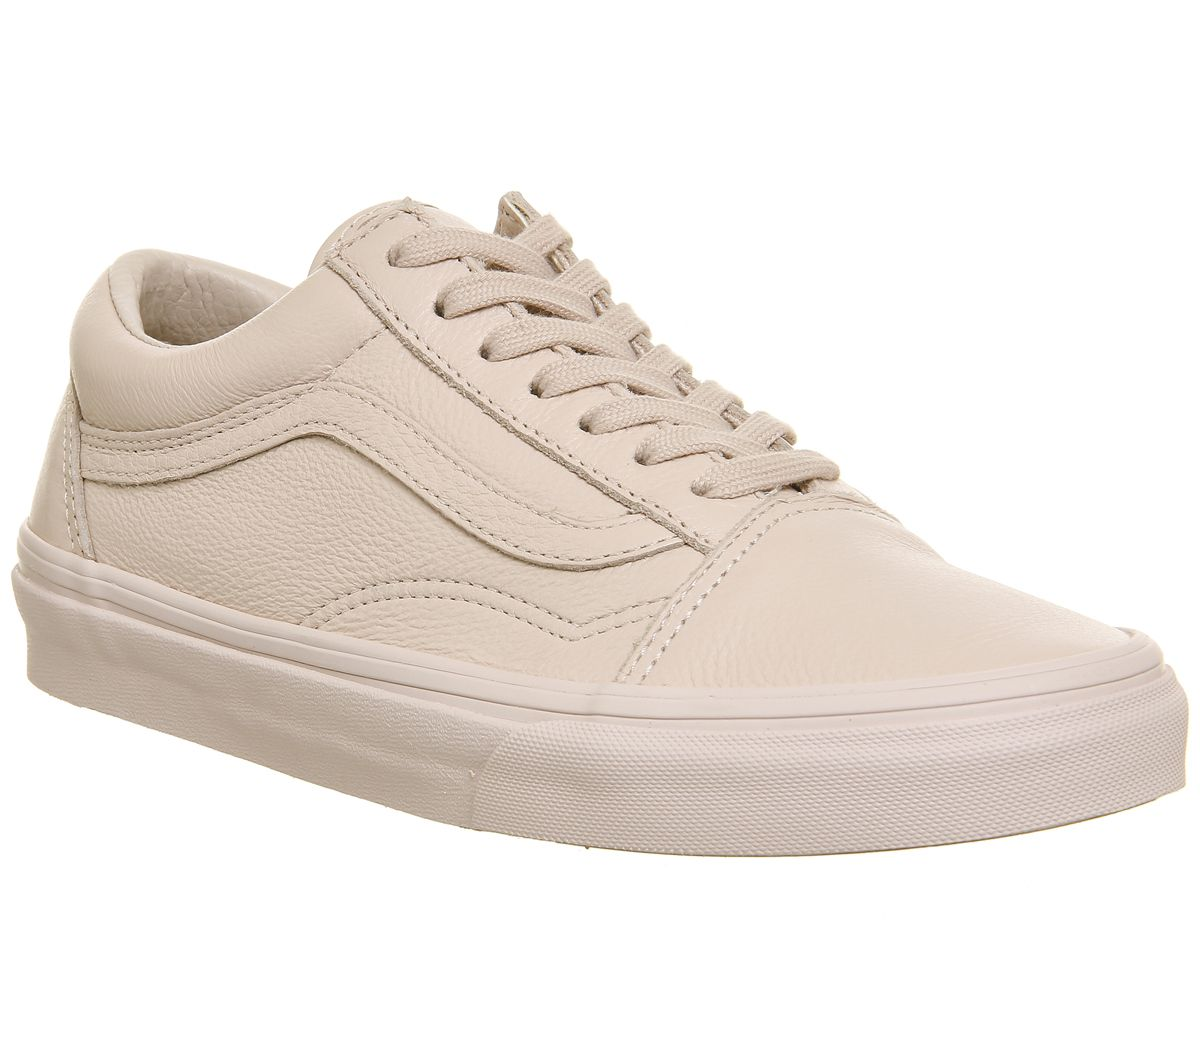 d85fb6f95723 Vans Old Skool Trainers Sepia Rose Mono - Hers trainers